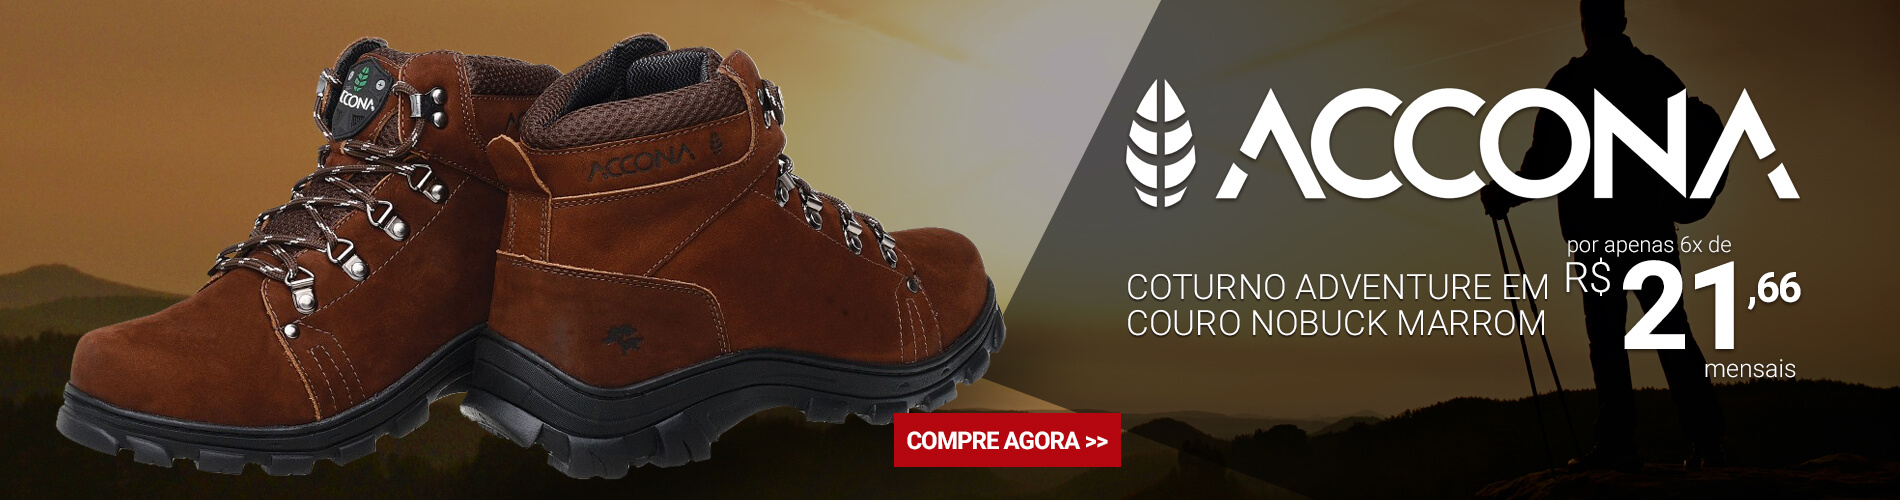 Banner - Bota Adventure Accona